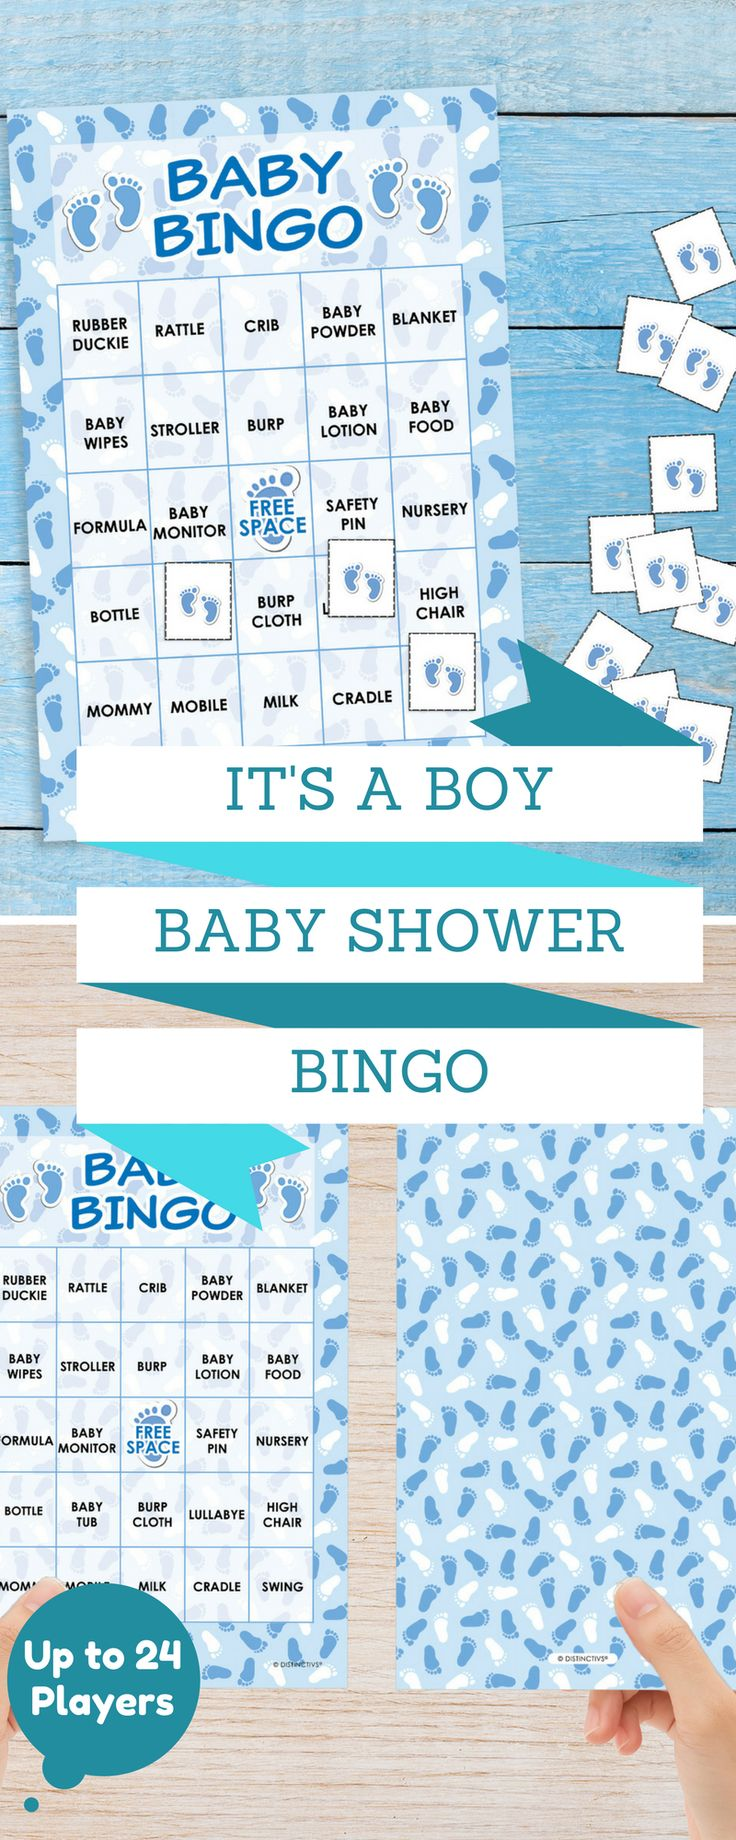 Best 25 Baby shower games ideas on Pinterest  Baby showe games Baby shower girl games and